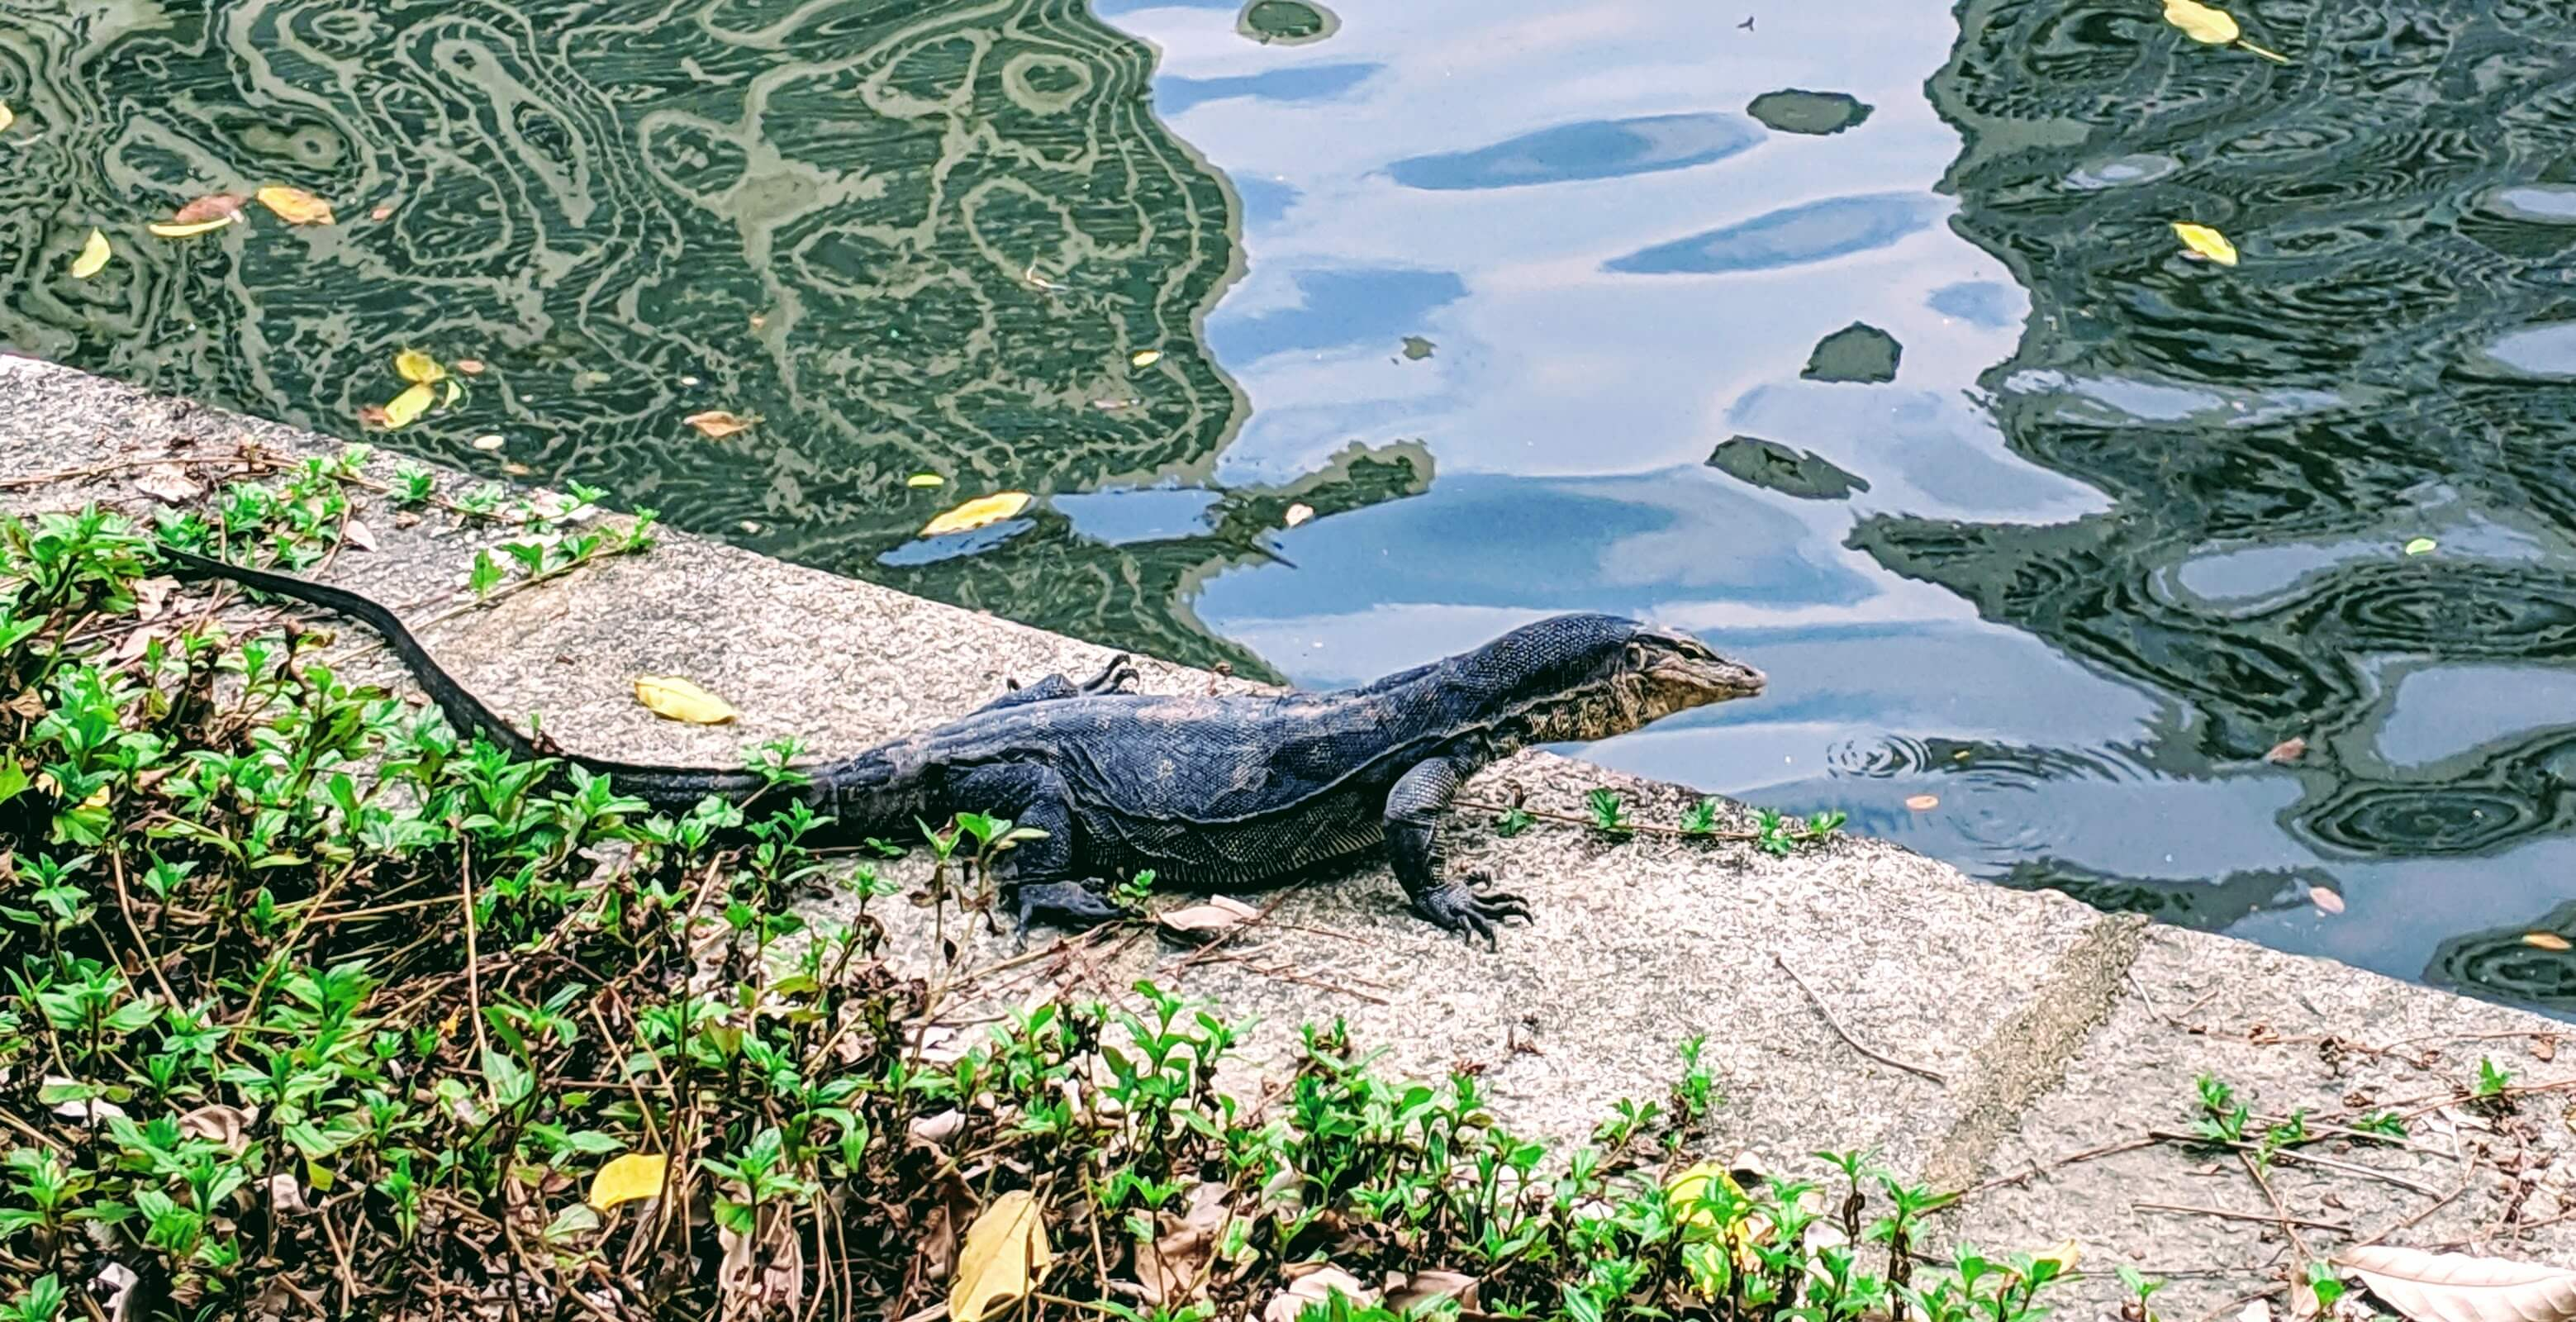 Water Monitor - body was about 5 feet long, with tail was easily 8 feet long.